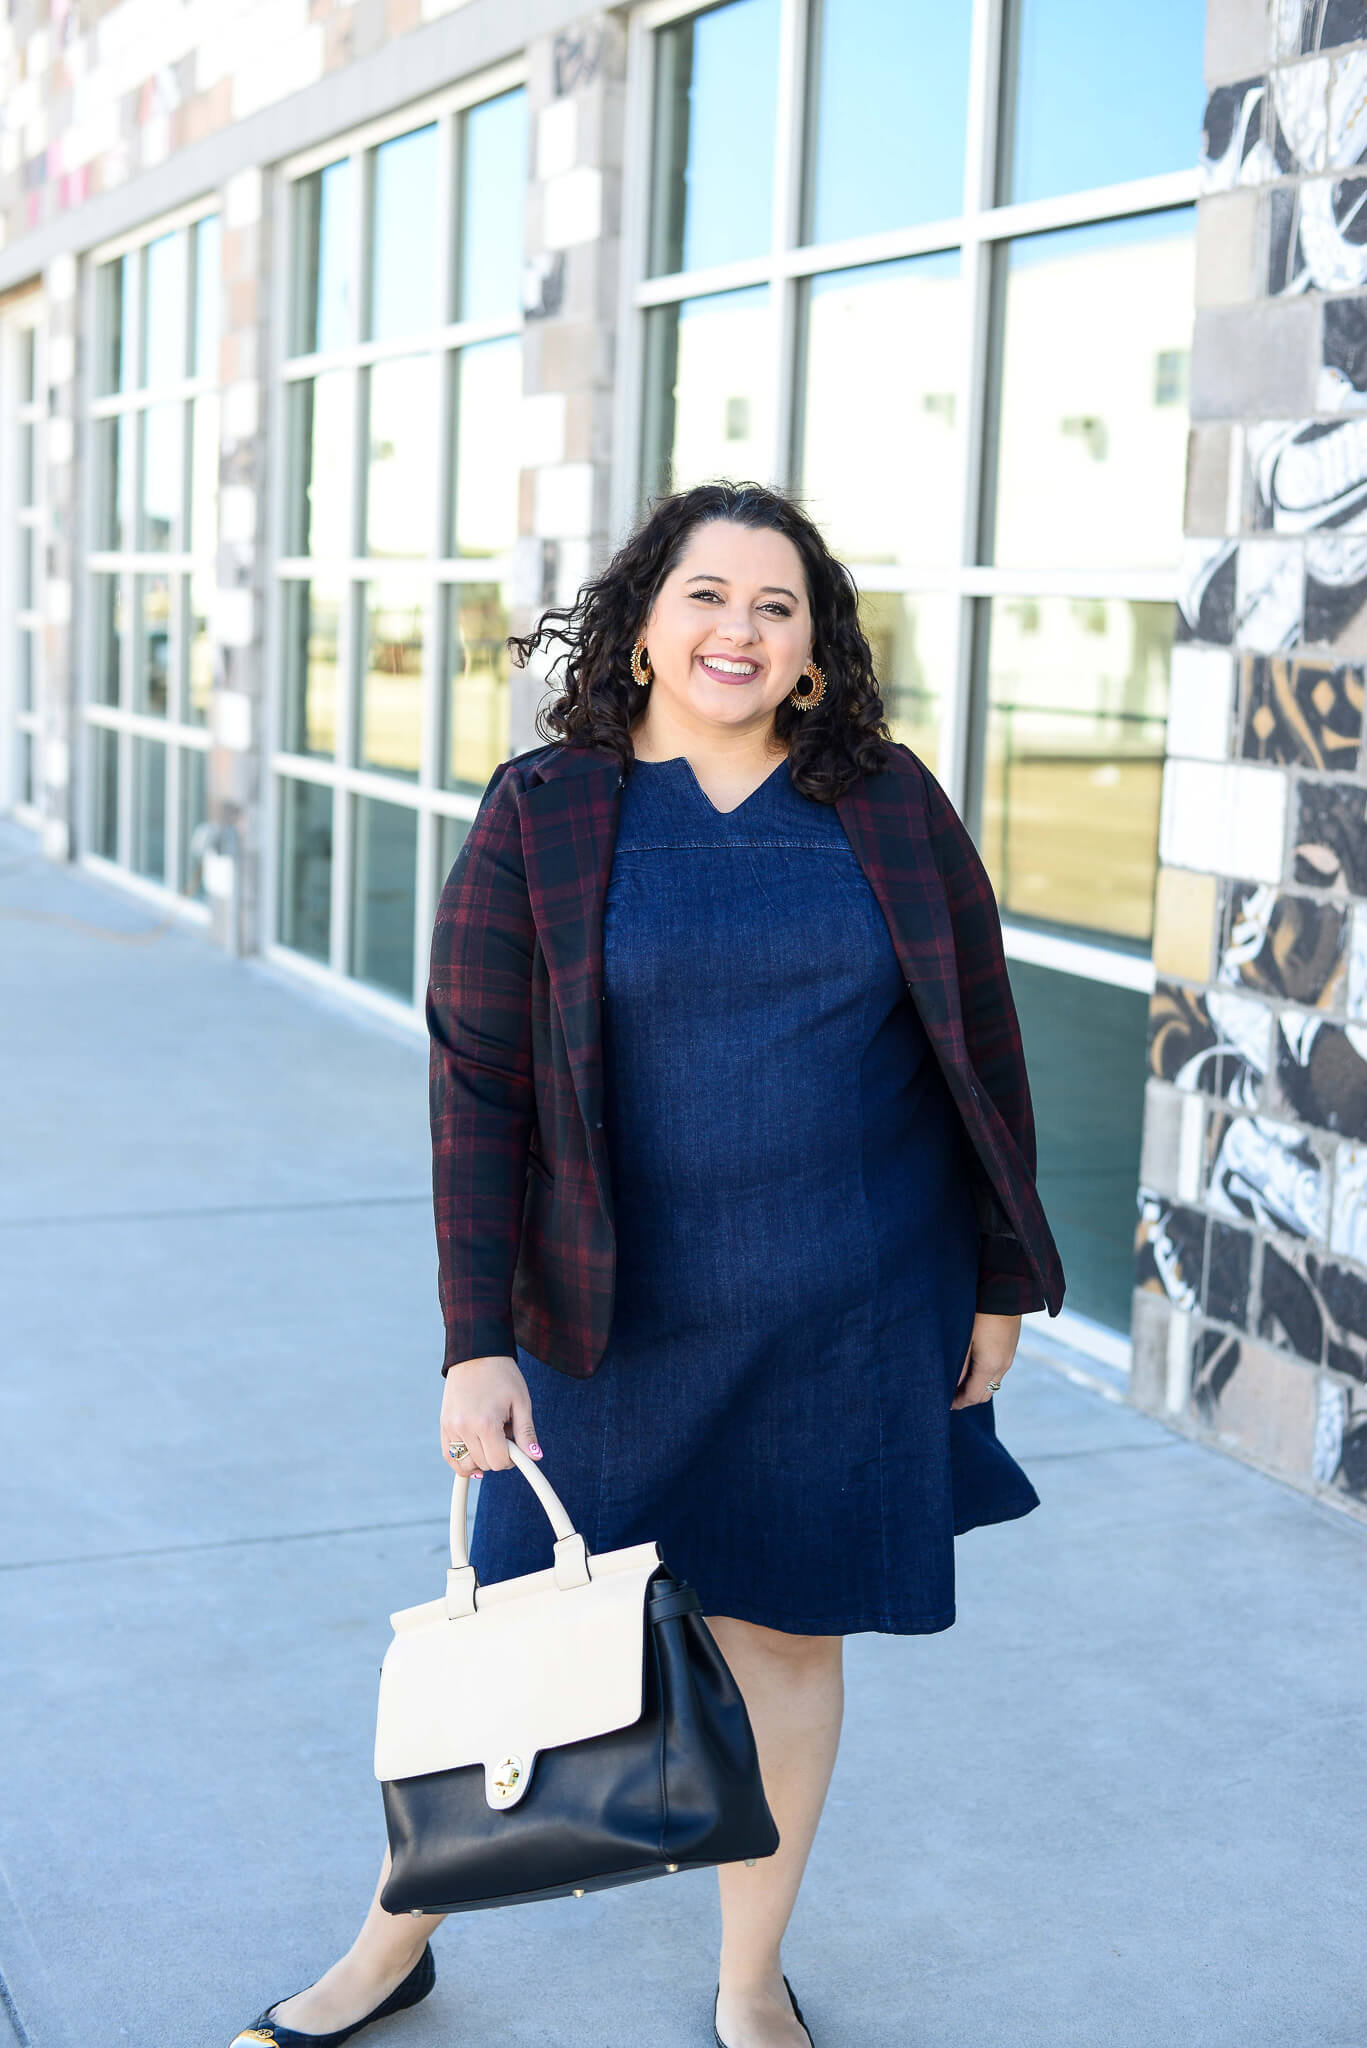 Wearing a denim dress to work is possible by pairing it with a great blazer